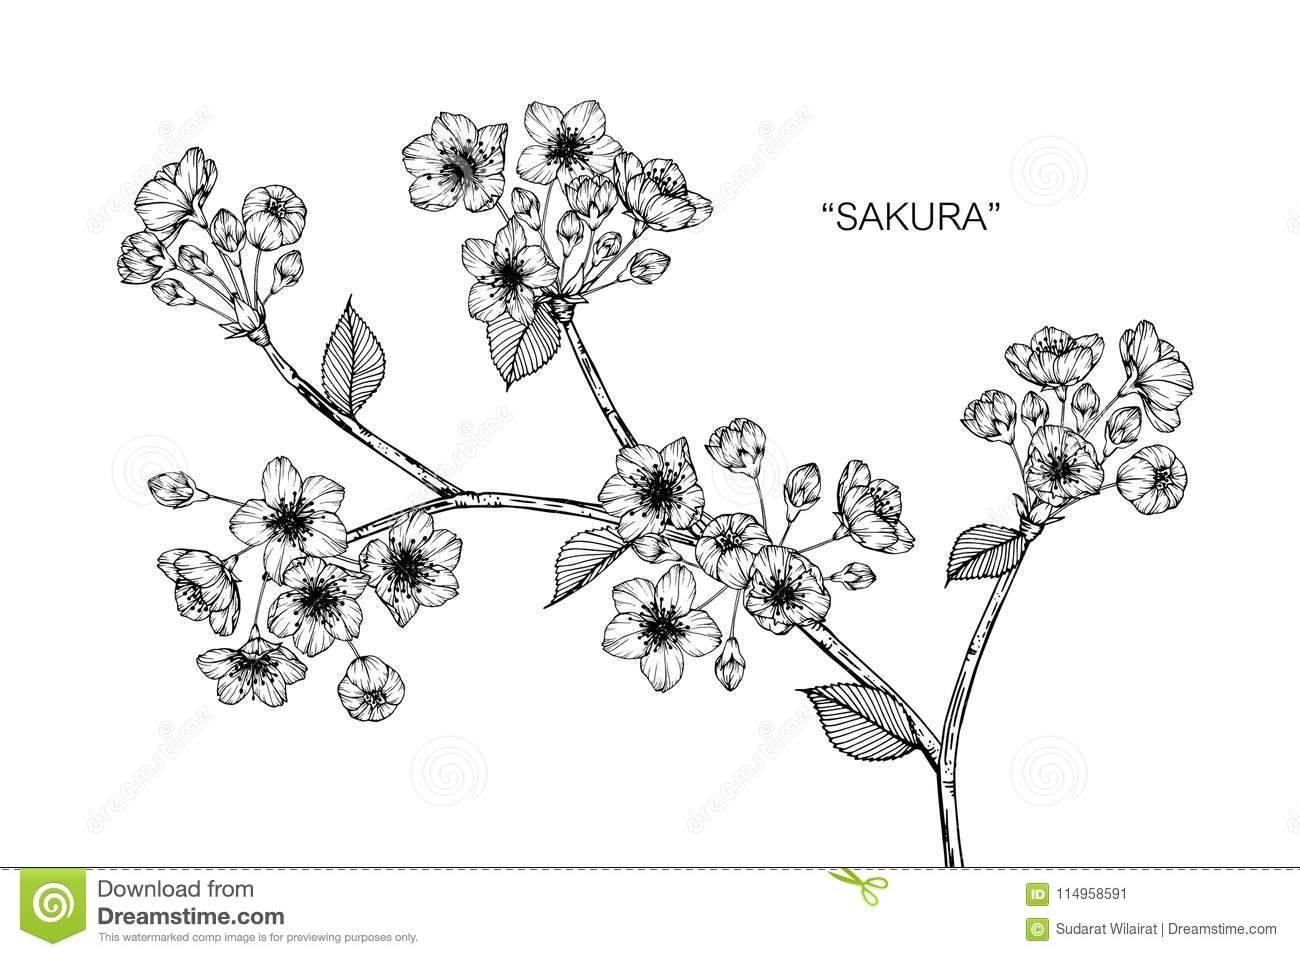 Sakura Flower Drawing Illustration Black And White With Line Art